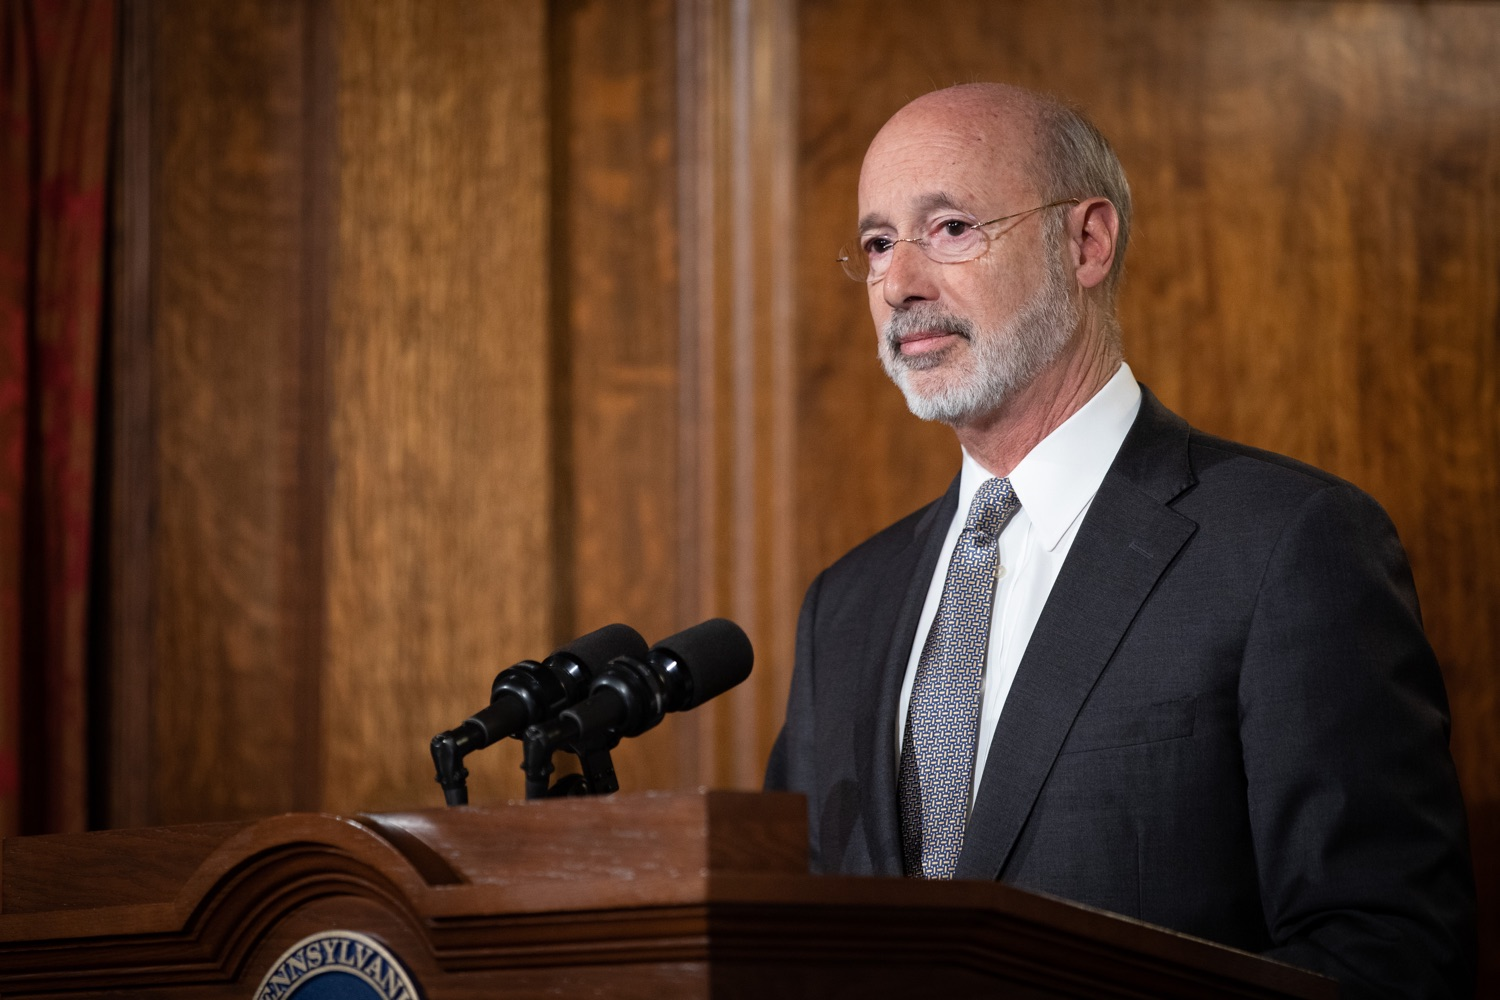 "<a href=""https://filesource.wostreaming.net/commonwealthofpa/photo/17554_gov_voter_reform_bill_dz_017.jpg"" target=""_blank"">⇣ Download Photo<br></a>Harrisburg, PA  Governor Tom Wolf speaks at the Election Reform Bill signing. Governor Wolf made voting more convenient and secure by signing Act 77 of 2019, the most significant improvement to Pennsylvanias elections in more than 80 years. The bipartisan compromise legislation takes effect for the April 2020 primary election and makes Pennsylvania a national leader with voter-friendly election reforms."